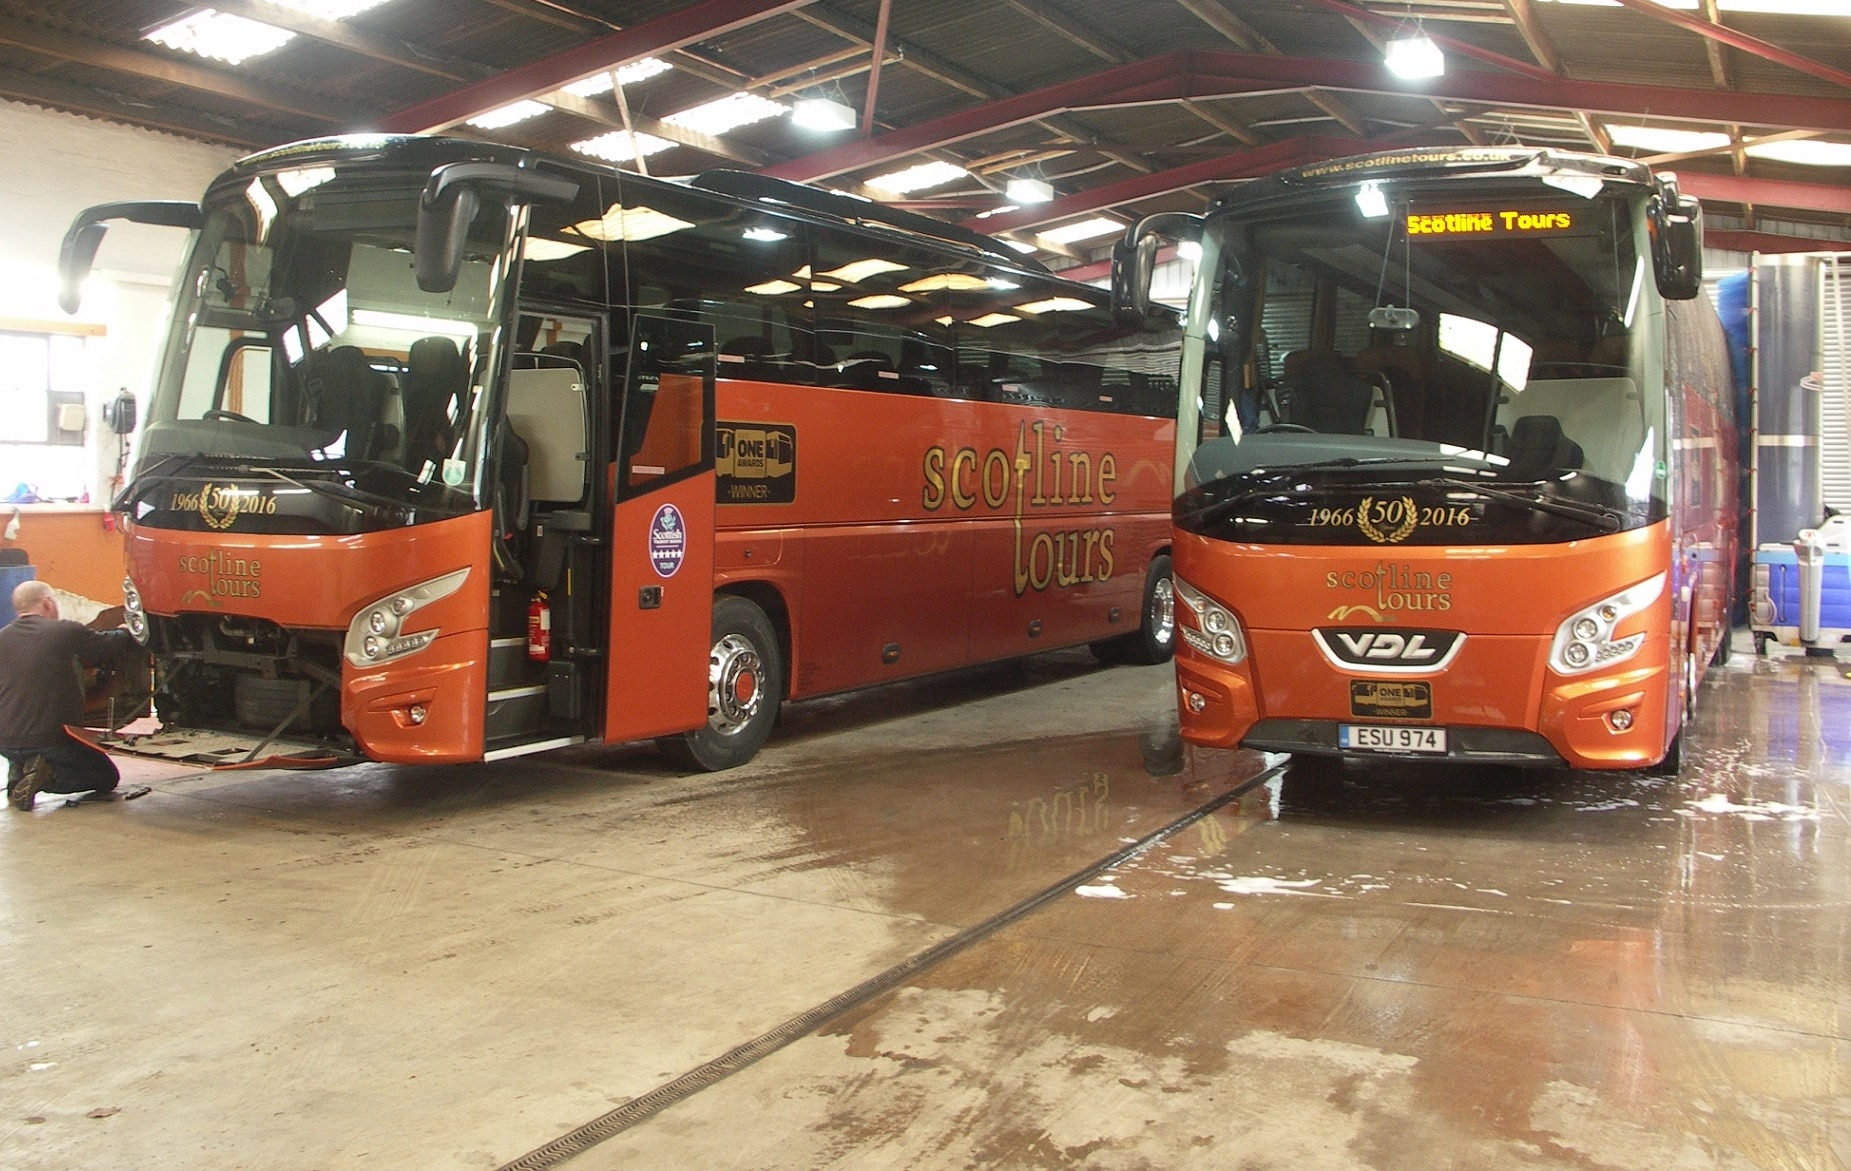 Scotland coach operators support fund opens